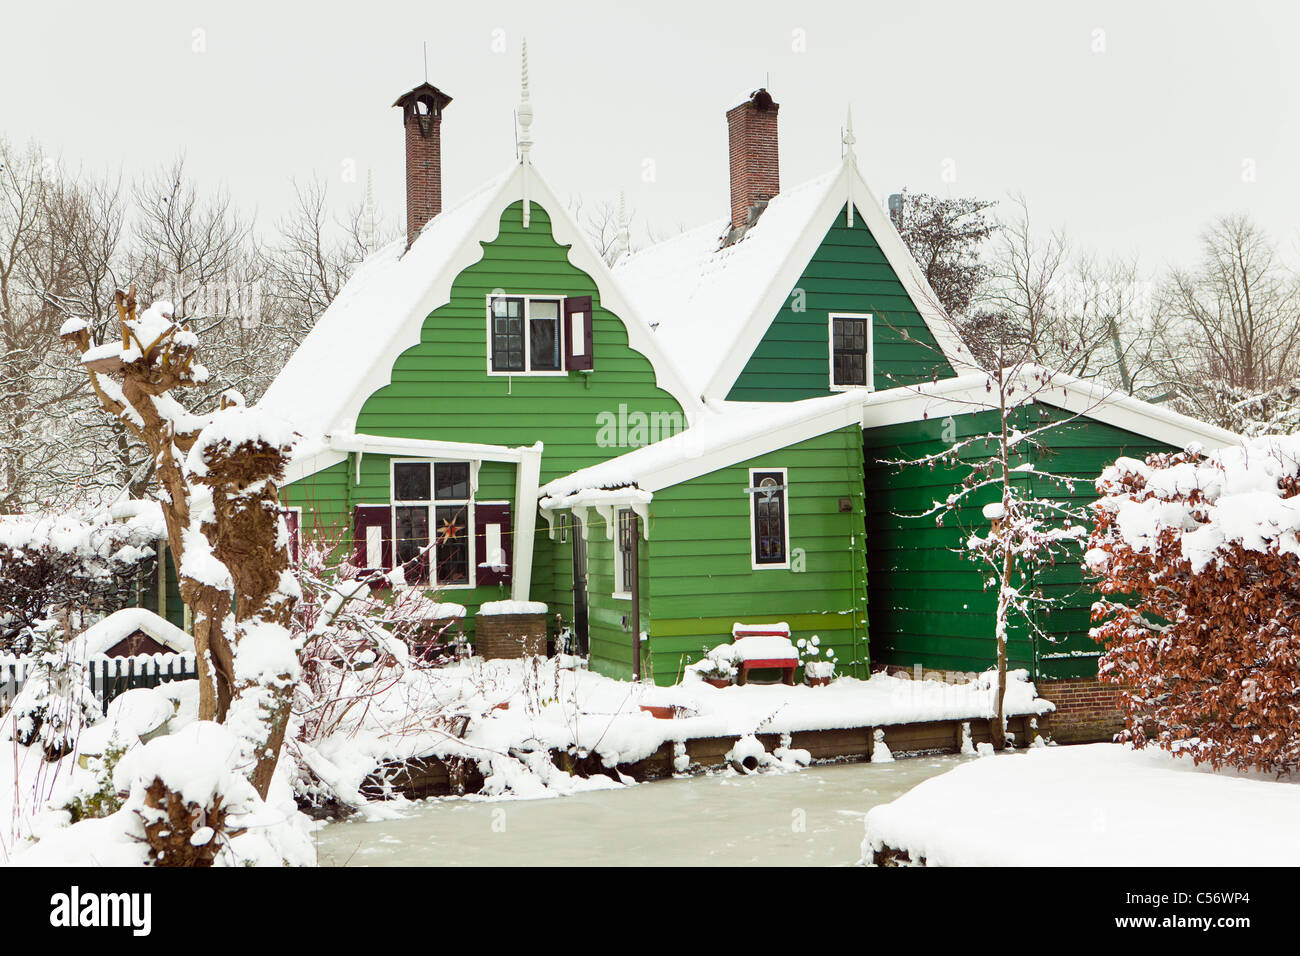 Zaanse Schans, village on the banks of the river Zaan with characteristic green wooden houses. Winter, snow. - Stock Image